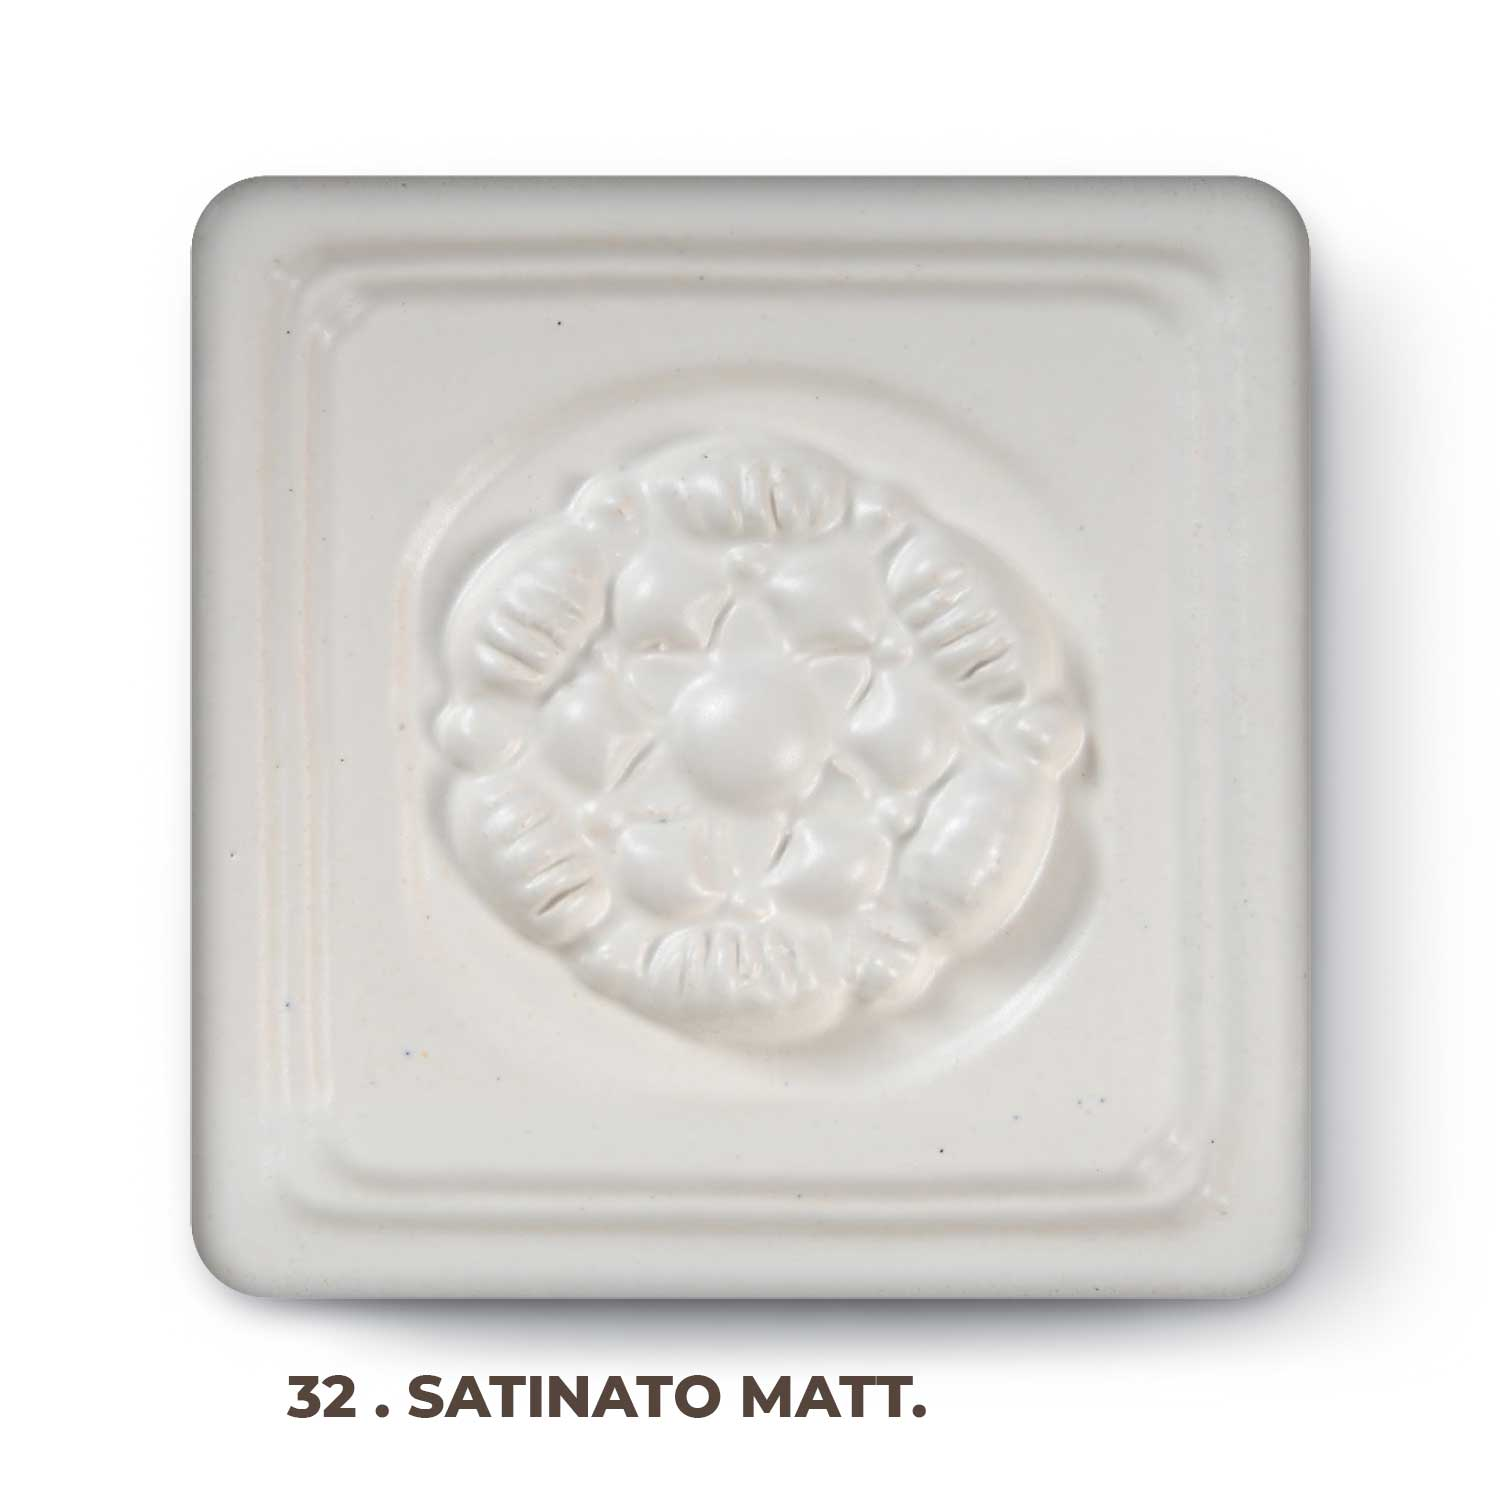 32 . Satinato Matt.